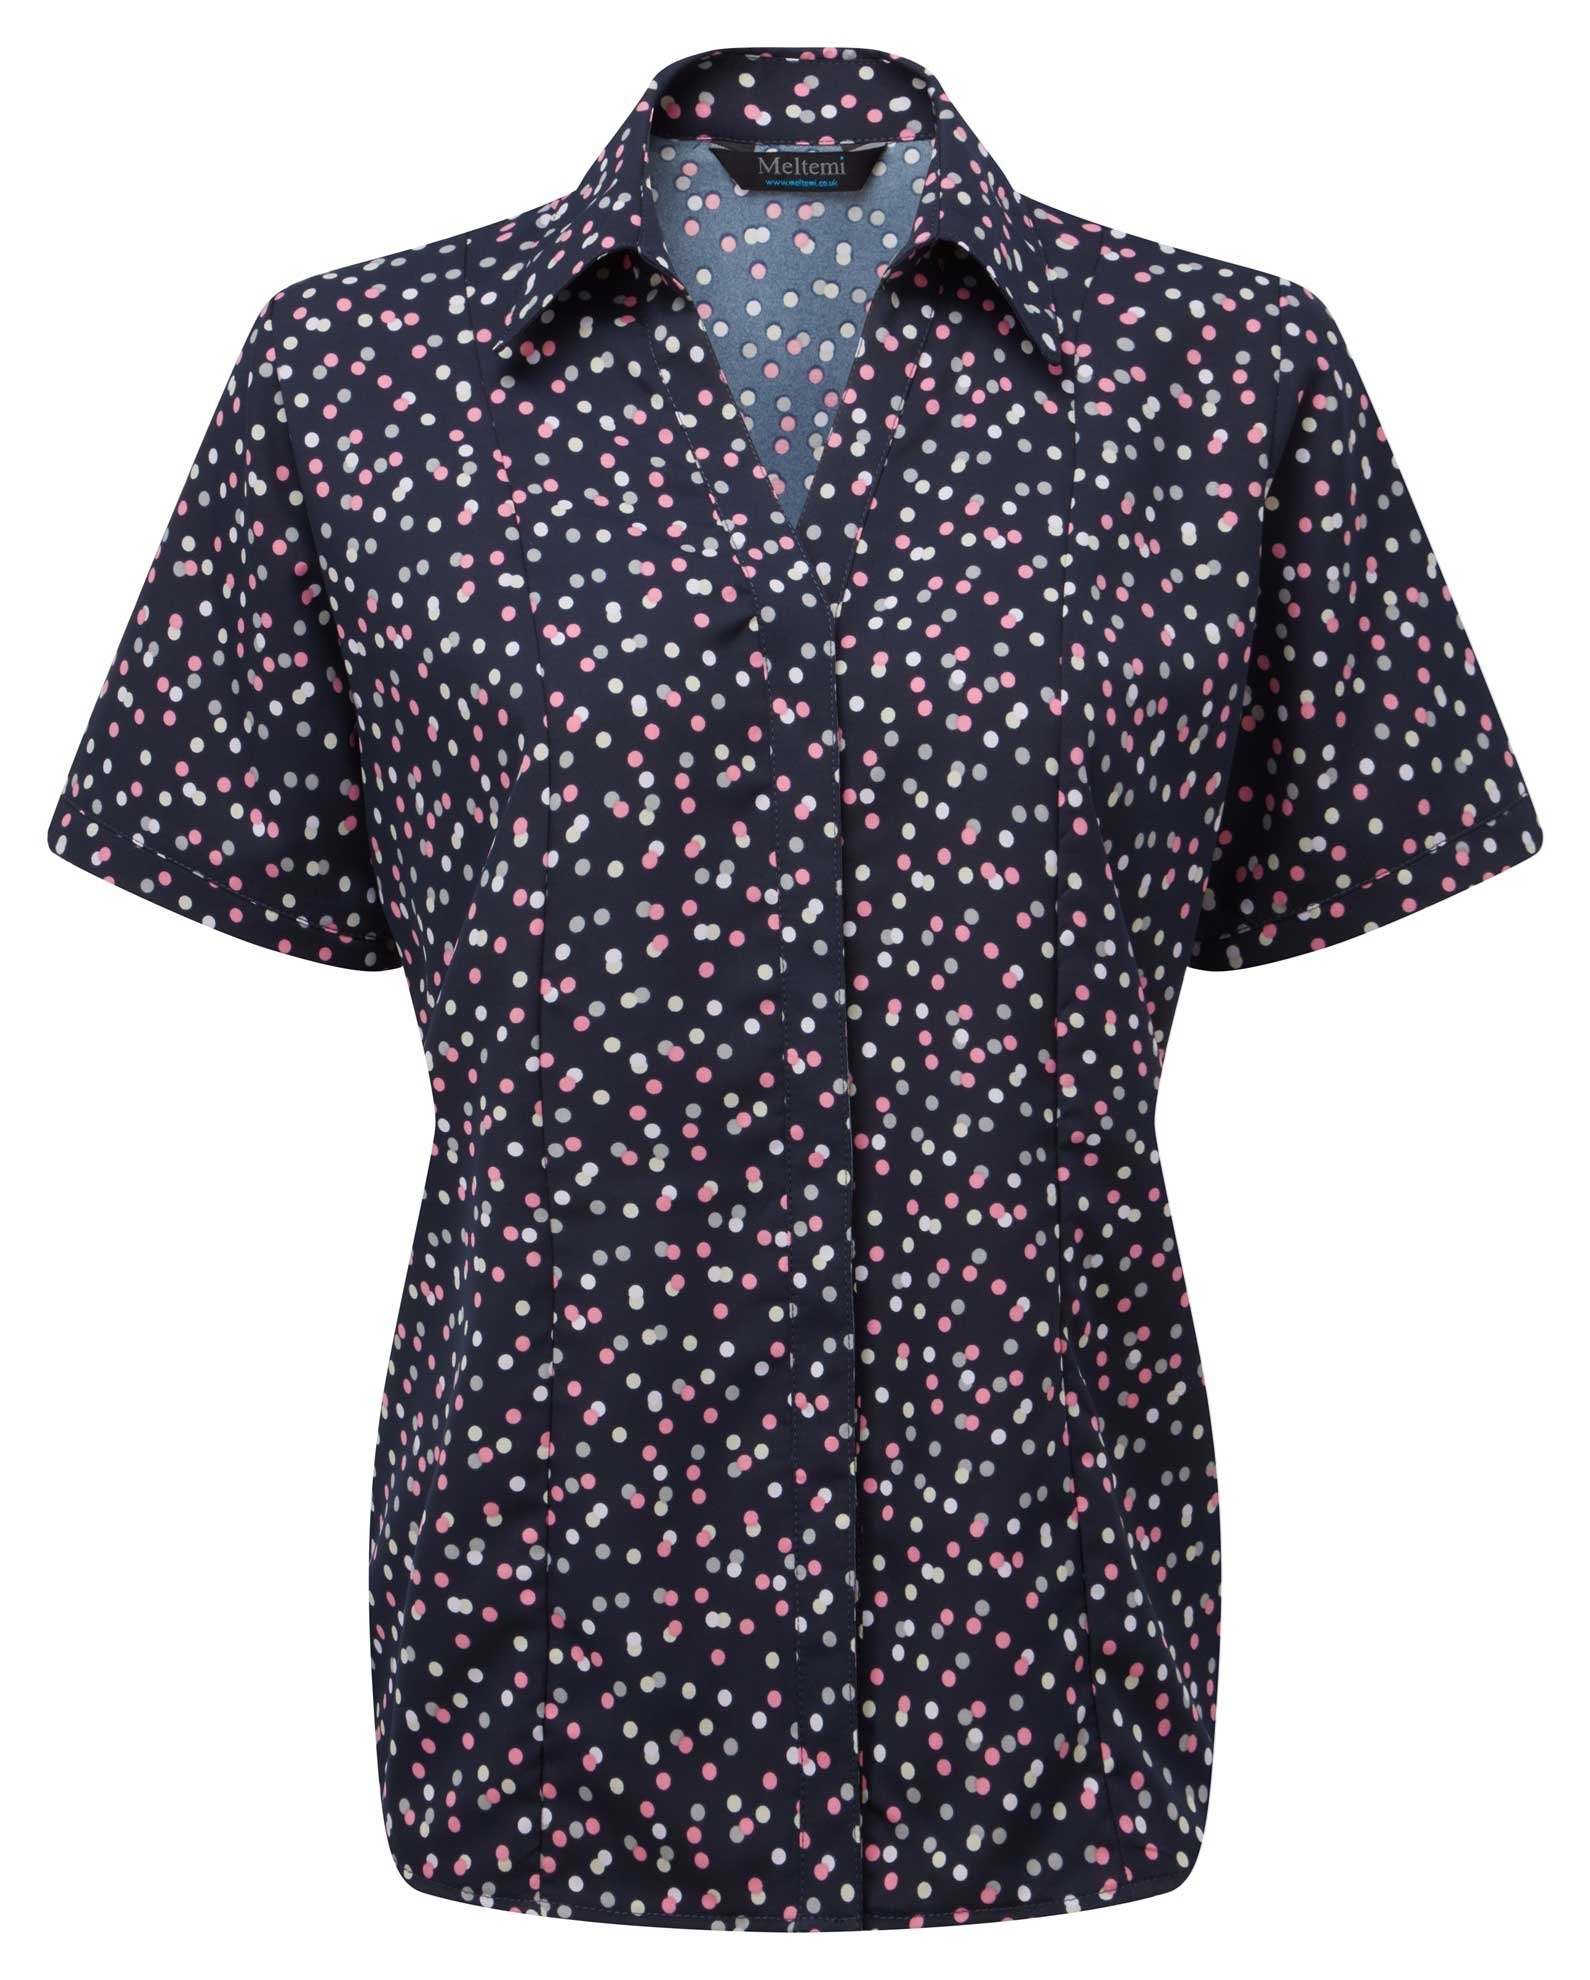 Picture of Semi-Fitted CoolWeave Blouse - Navy/Pink/Grey Darcey Print